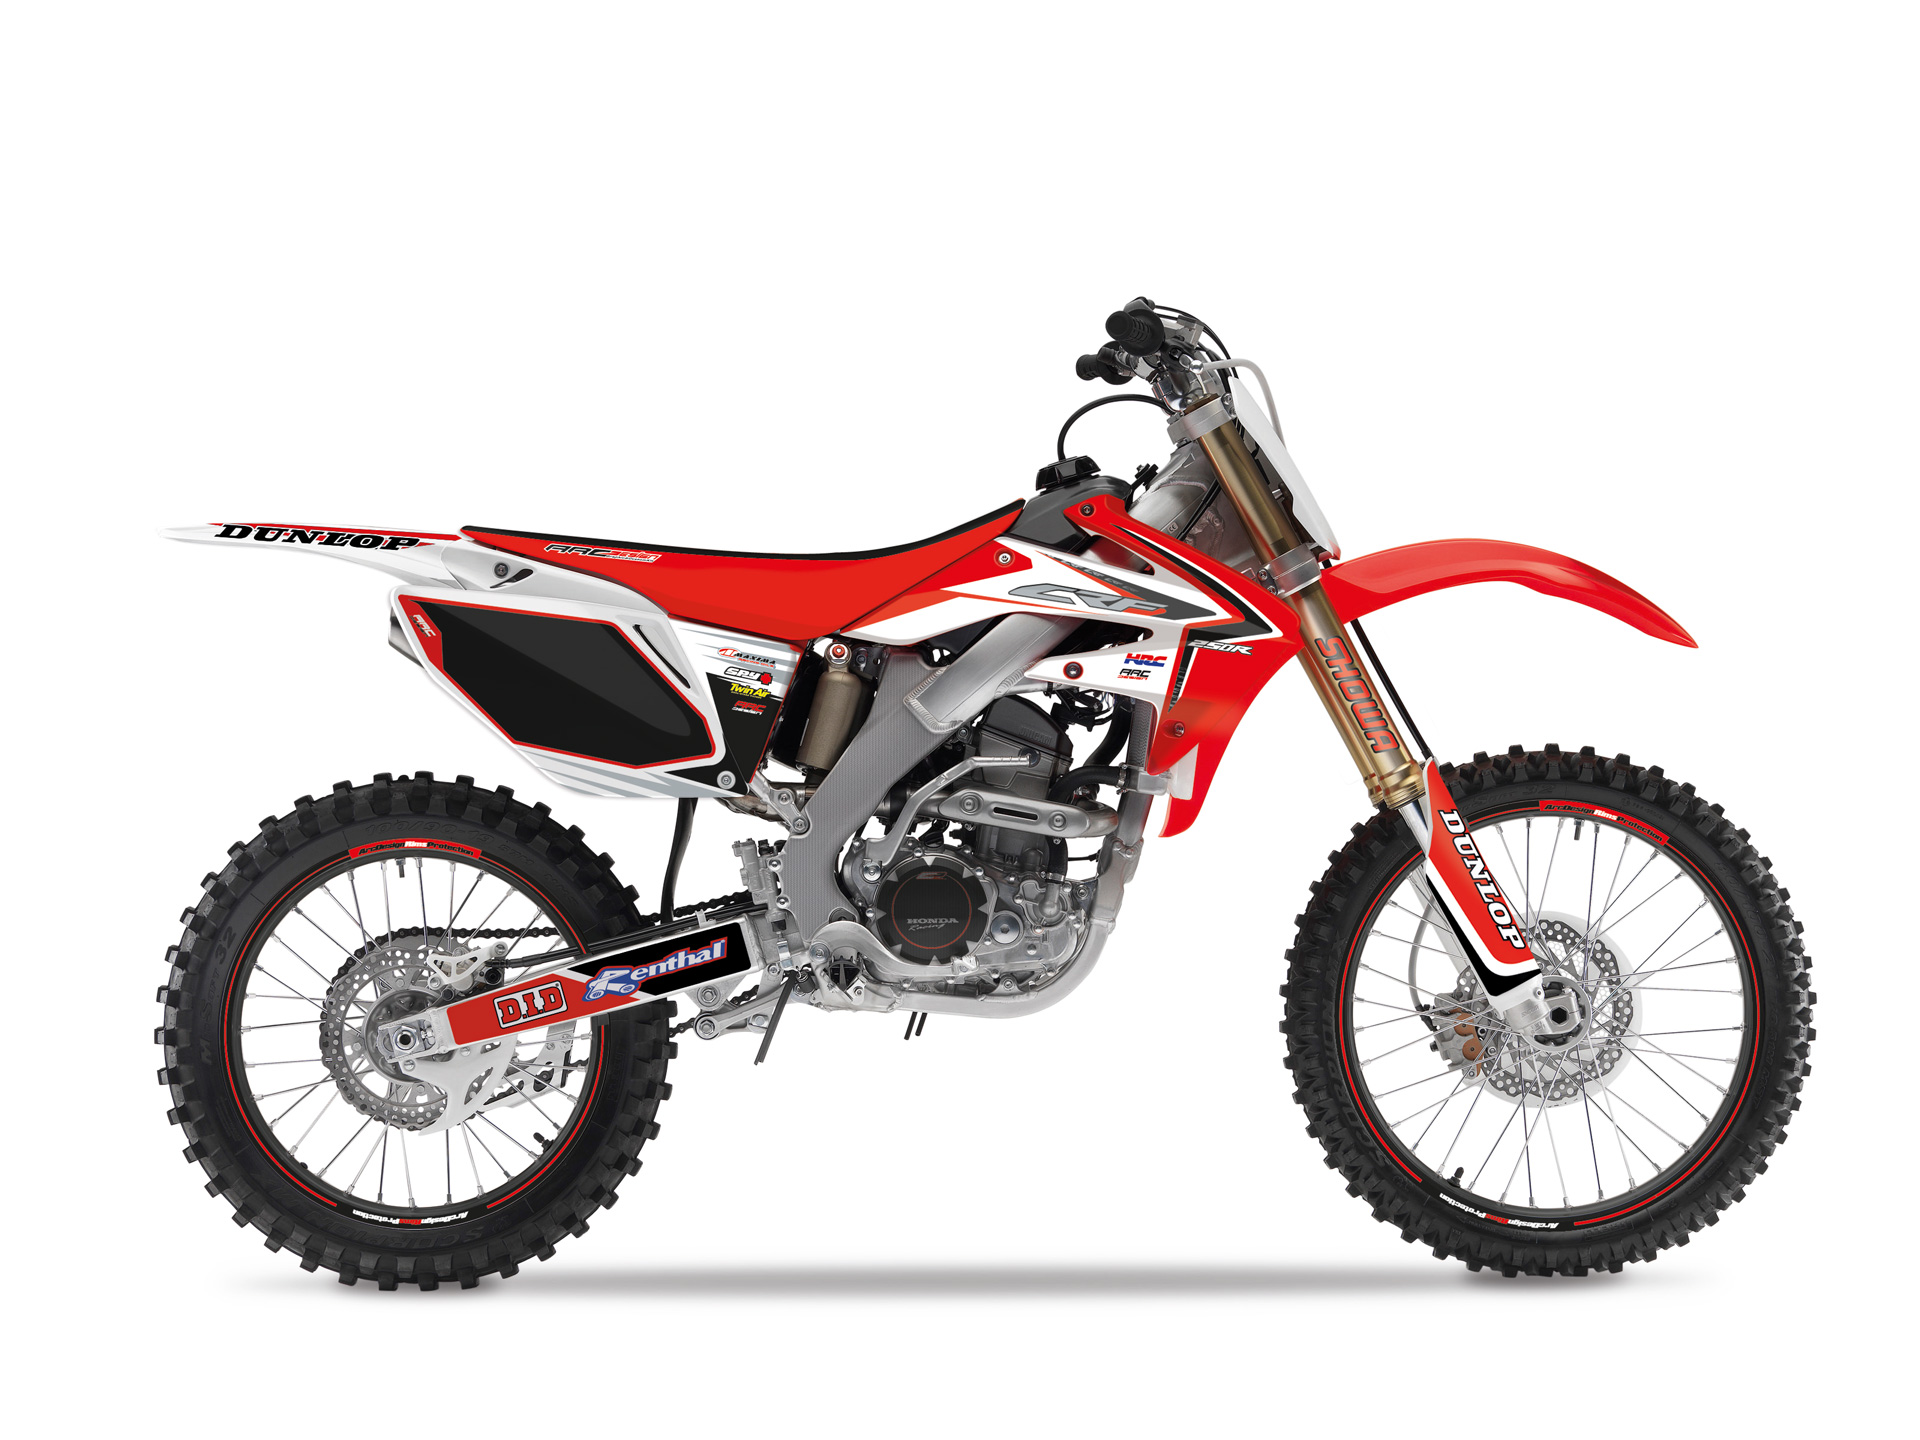 kit a c honda crf 250 2008 2009 arc design adesivi grafiche m12r ebay. Black Bedroom Furniture Sets. Home Design Ideas